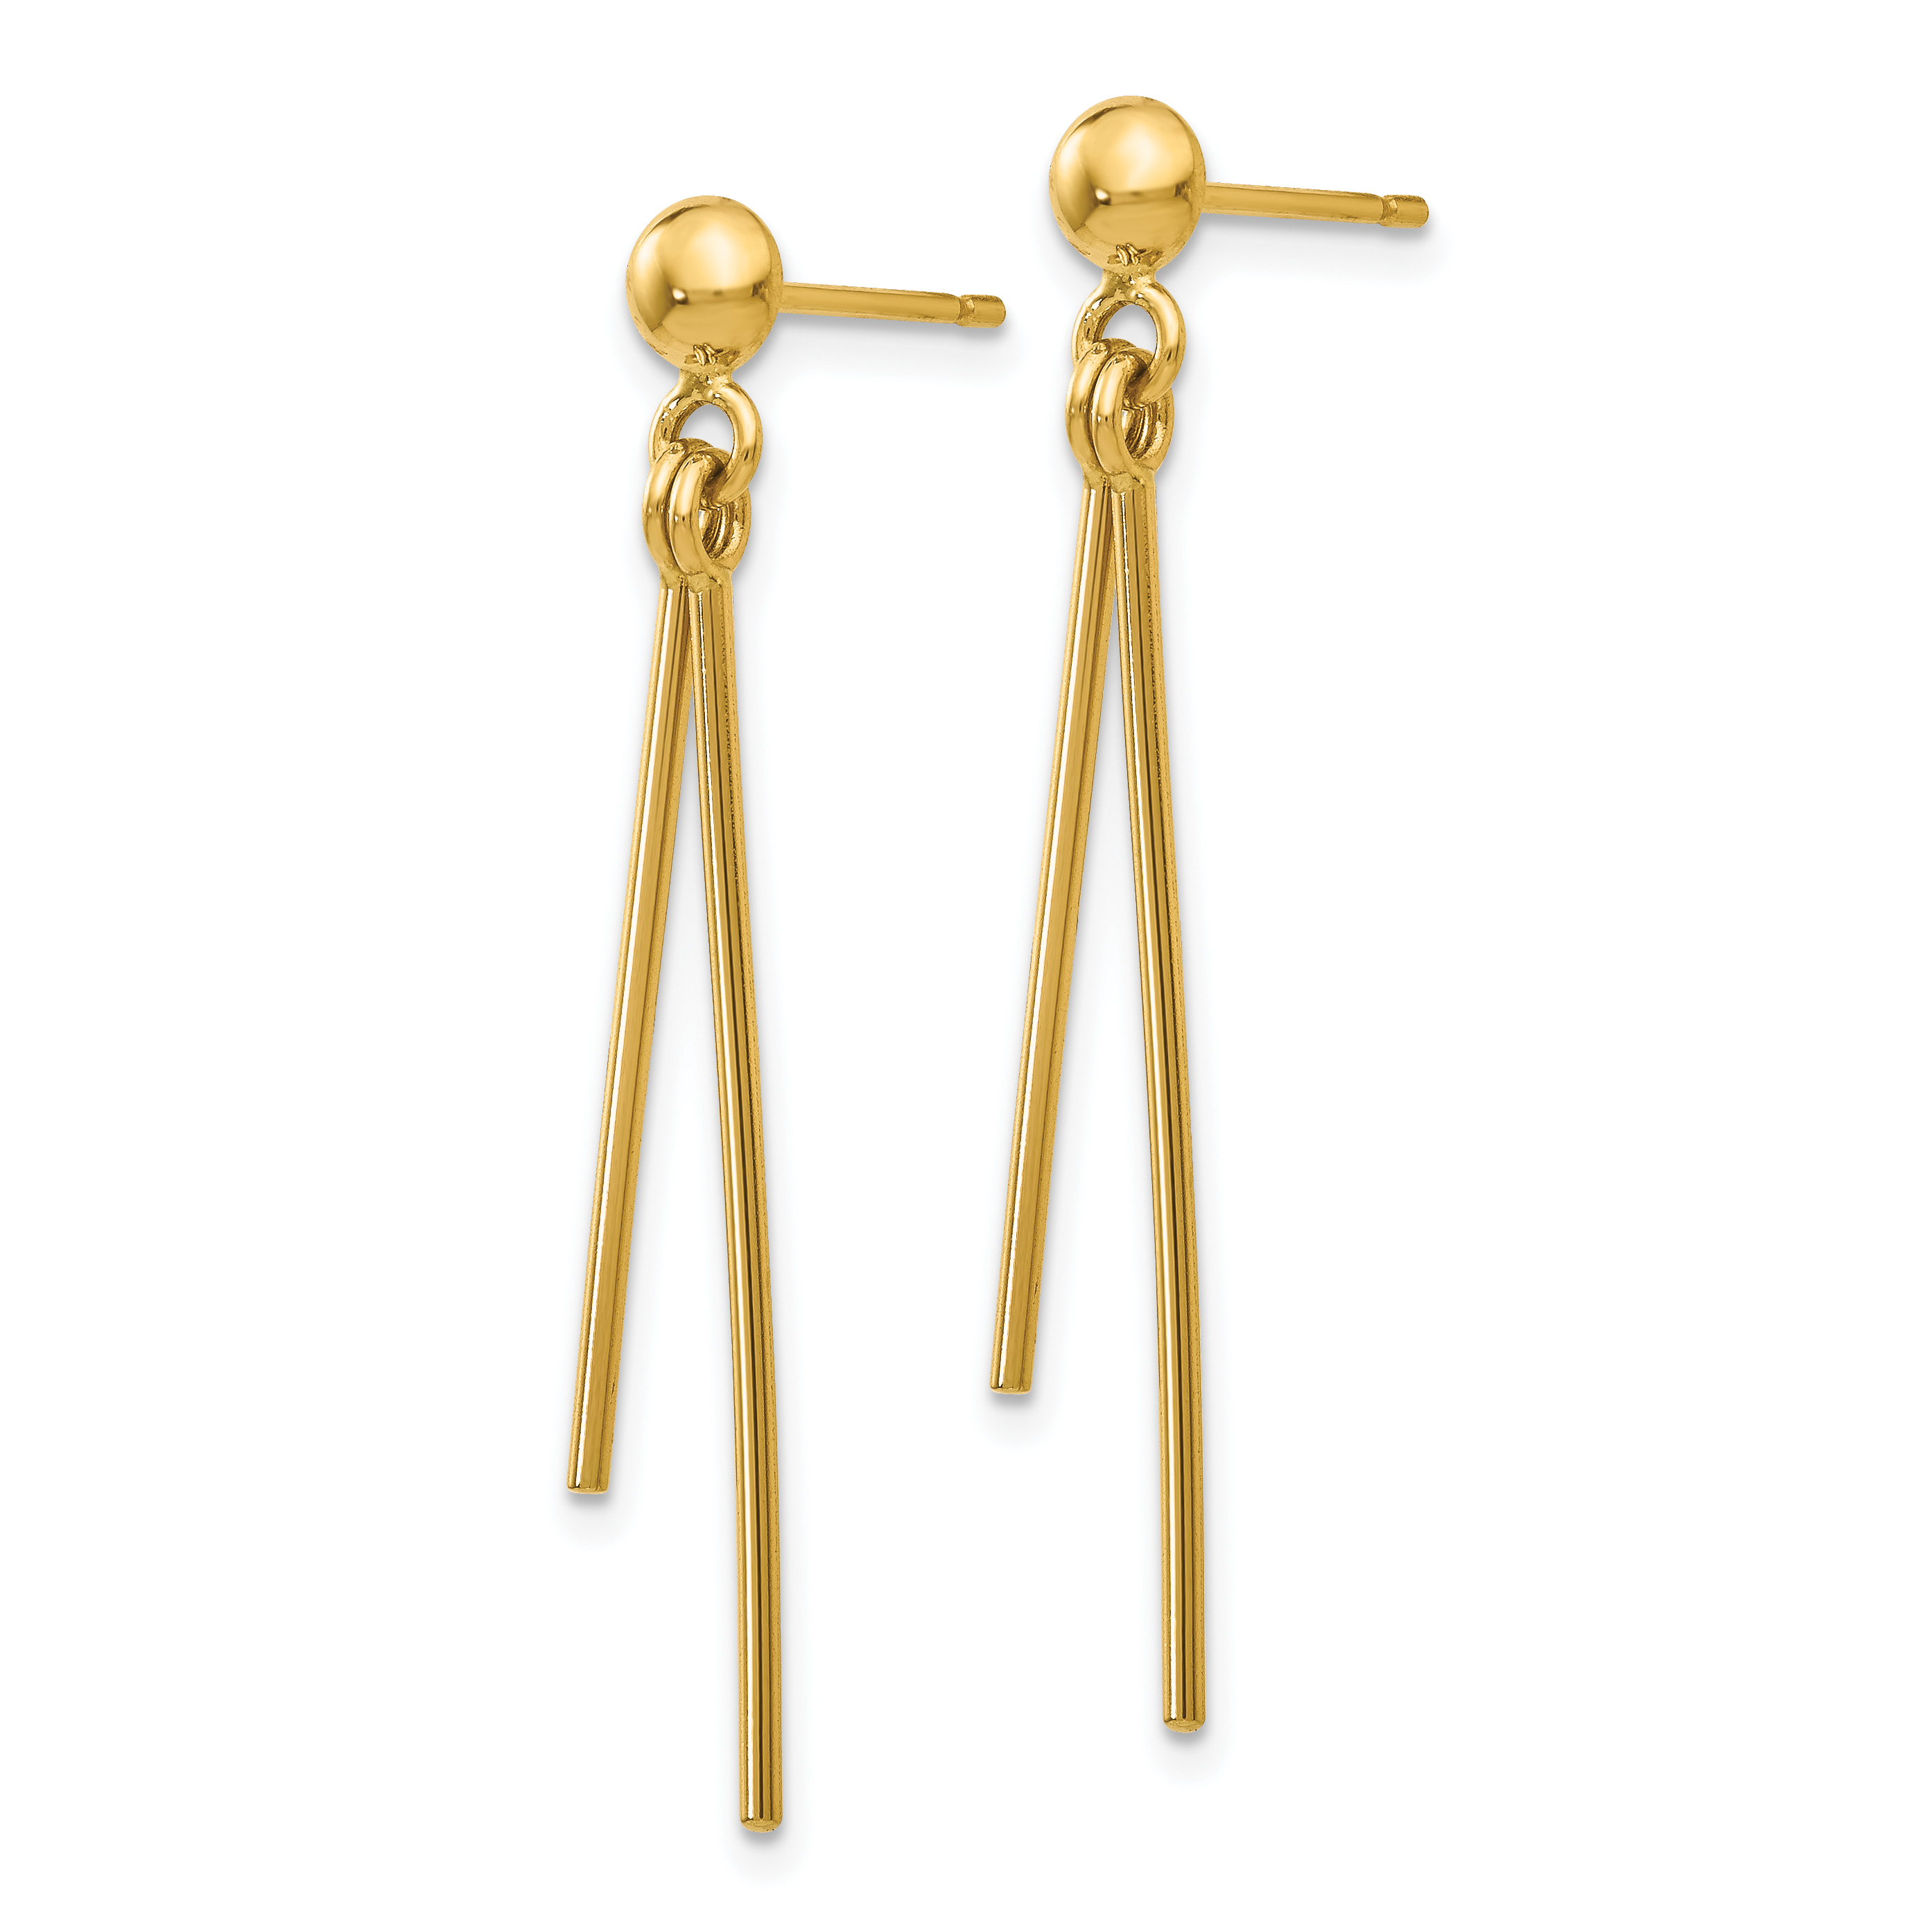 14k Yellow Gold Post Stud Drop Dangle Chandelier Earrings Fine Jewelry Gifts For Women For Her - image 1 of 3